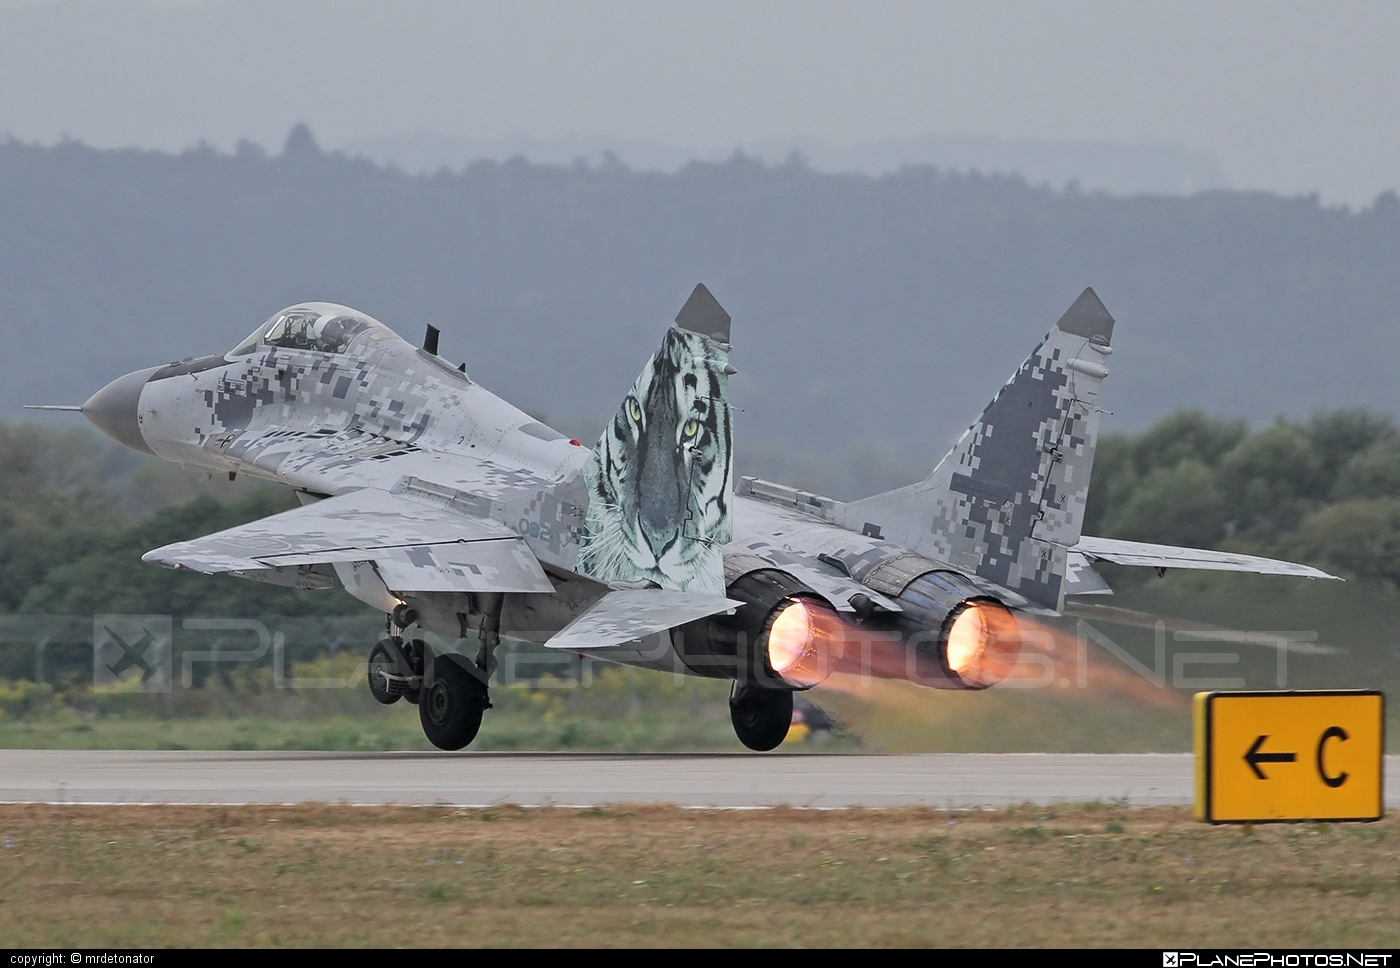 Mikoyan-Gurevich MiG-29AS - 0921 operated by Vzdušné sily OS SR (Slovak Air Force) #mig #mig29 #mig29as #mikoyangurevich #slovakairforce #vzdusnesilyossr